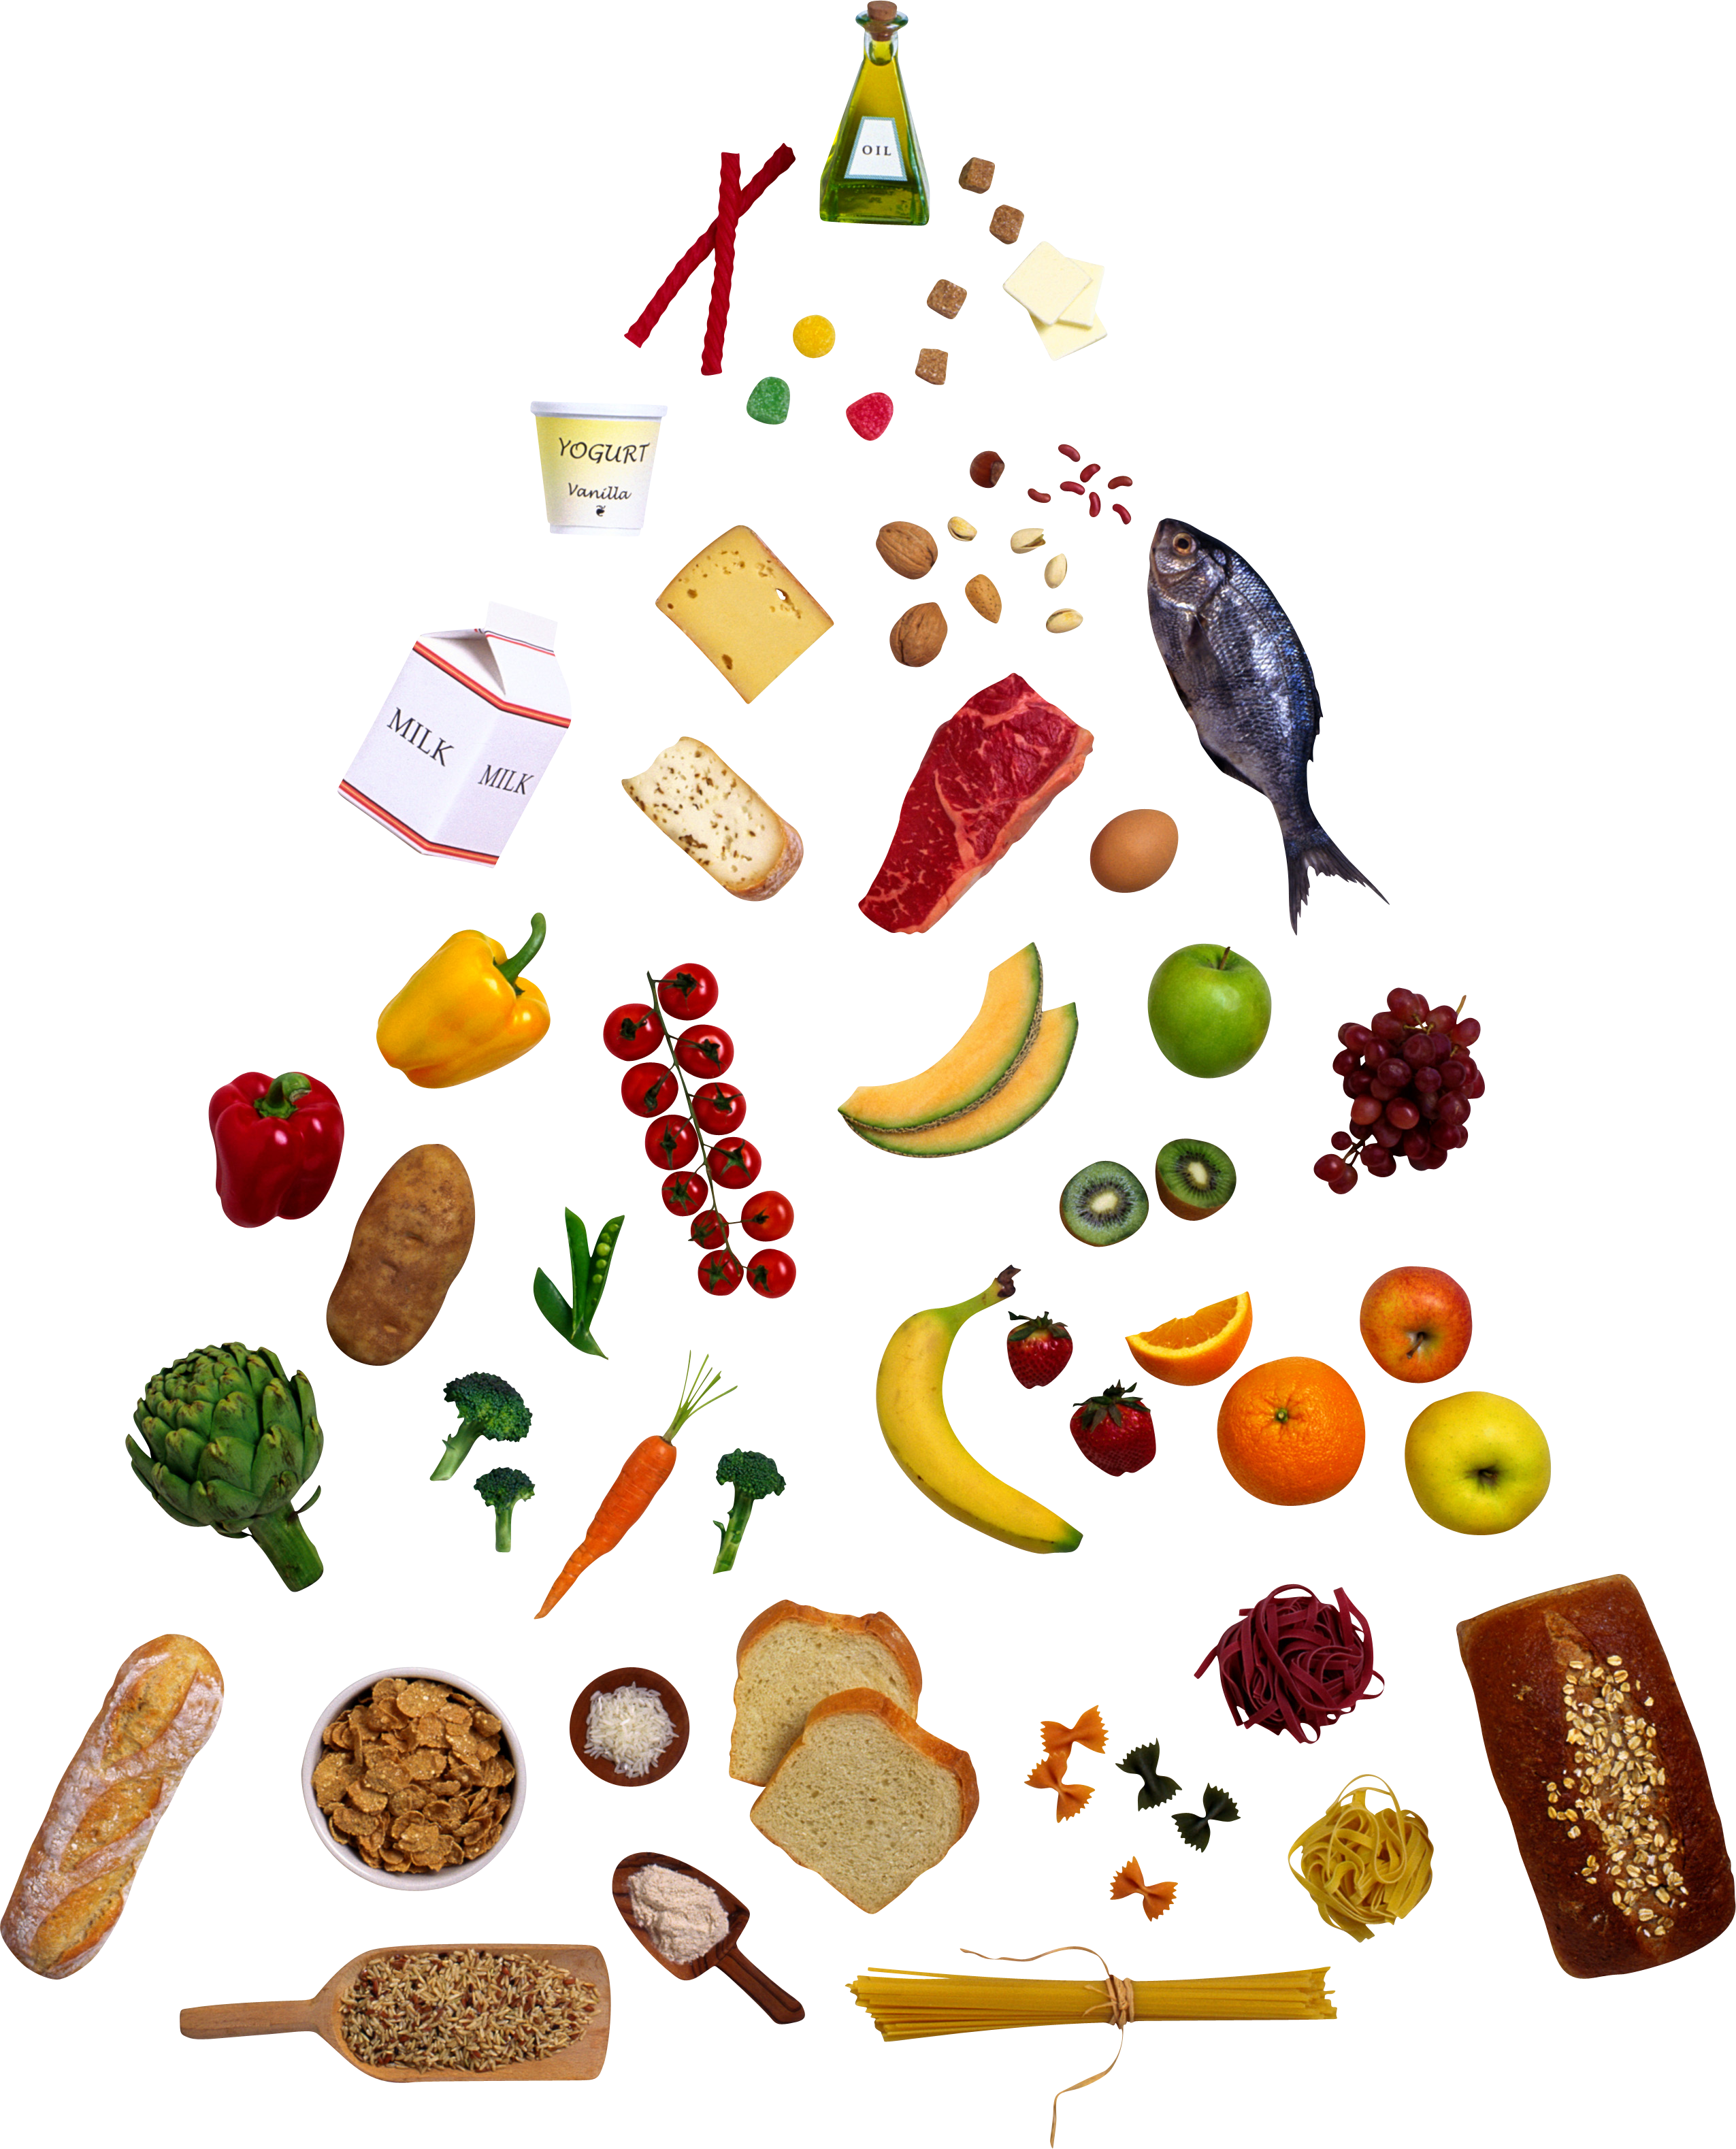 Healthy clipart nutritional food. Free images download clip